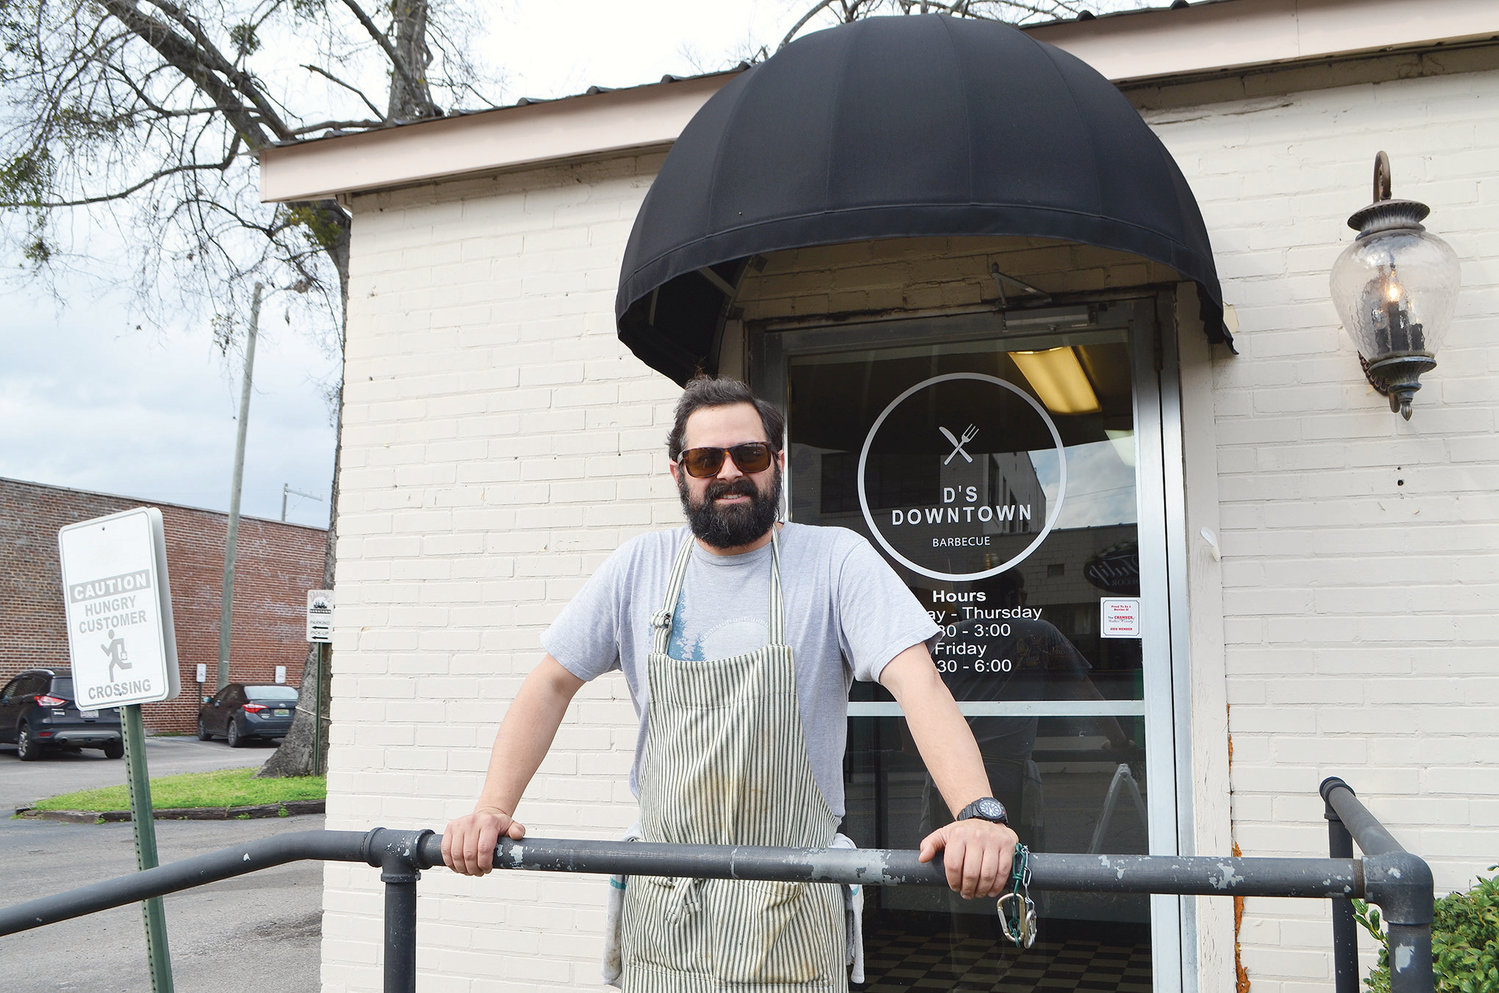 D's Downtown Barbecue owner Darren Hix stands outside his new restaurant in downtown Jasper.